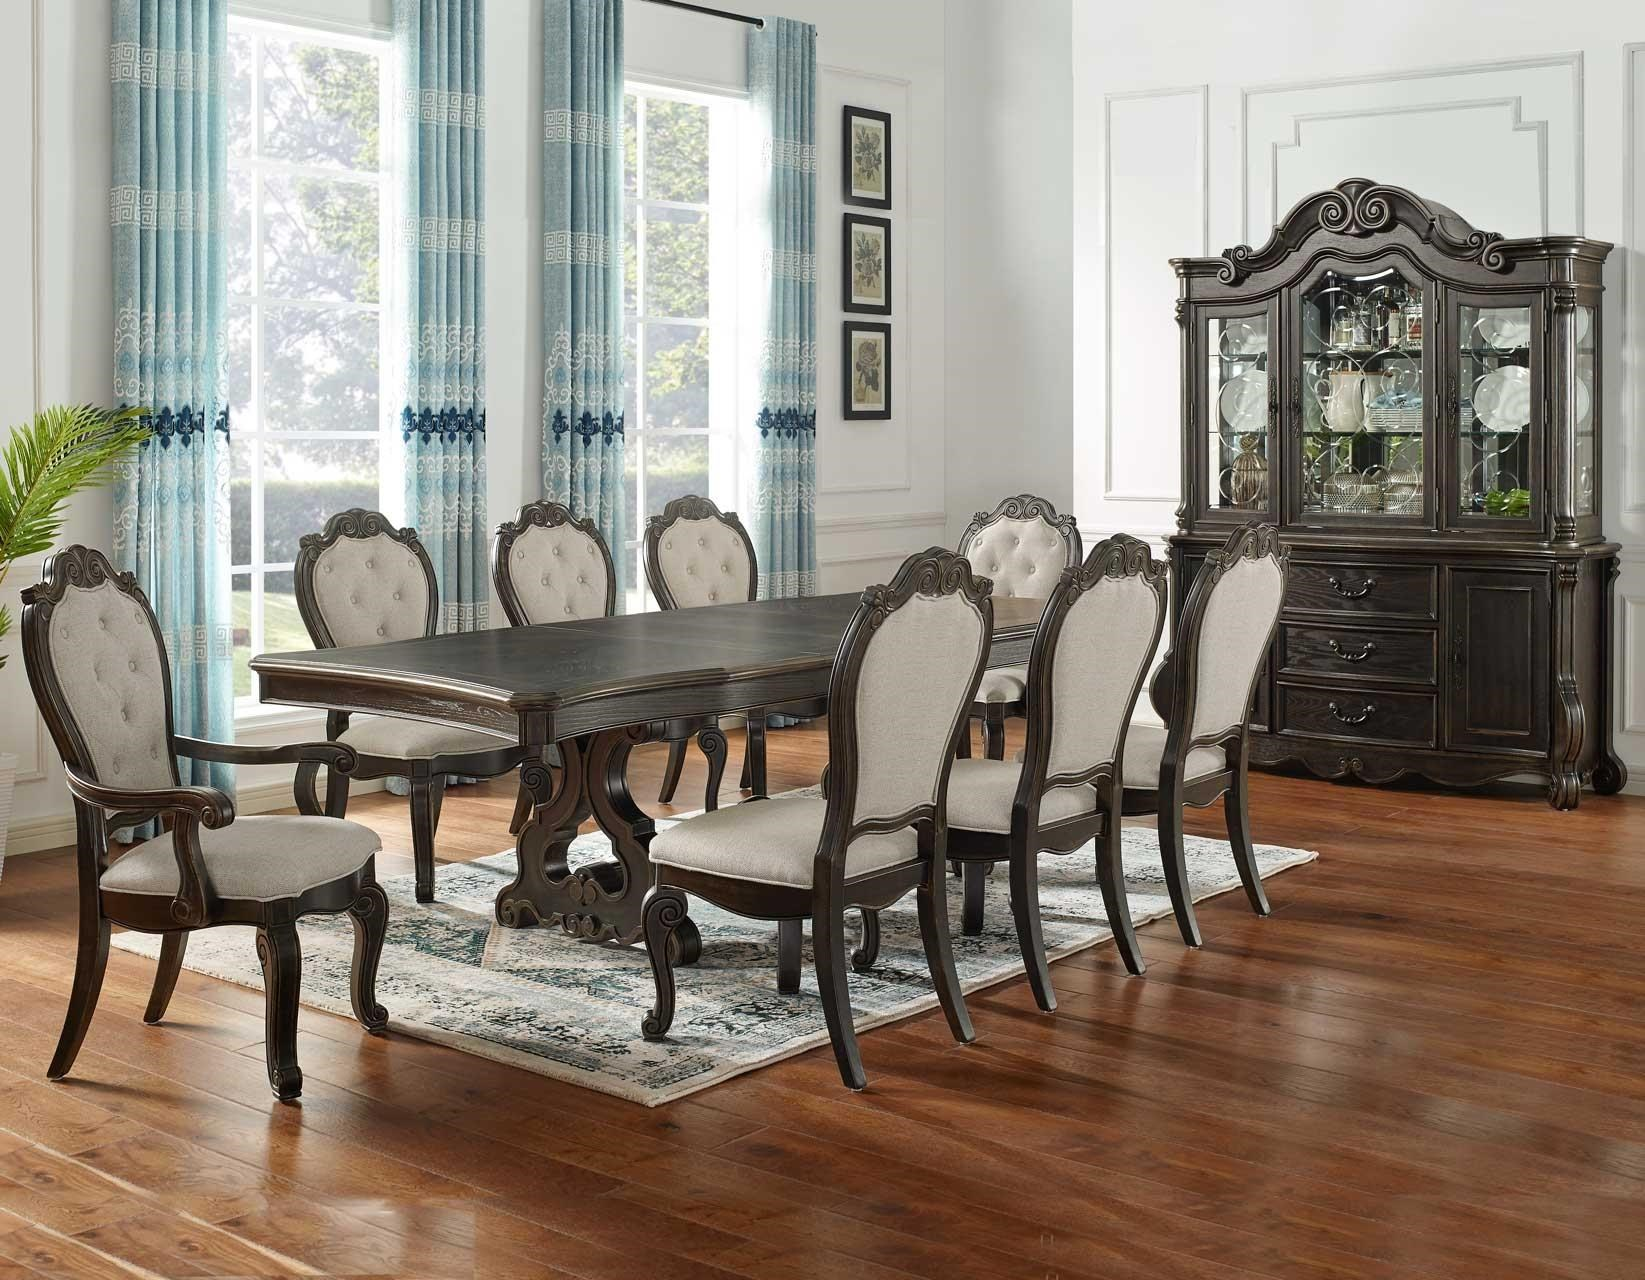 Dining Table with 2 Arm and 4 Side Chairs